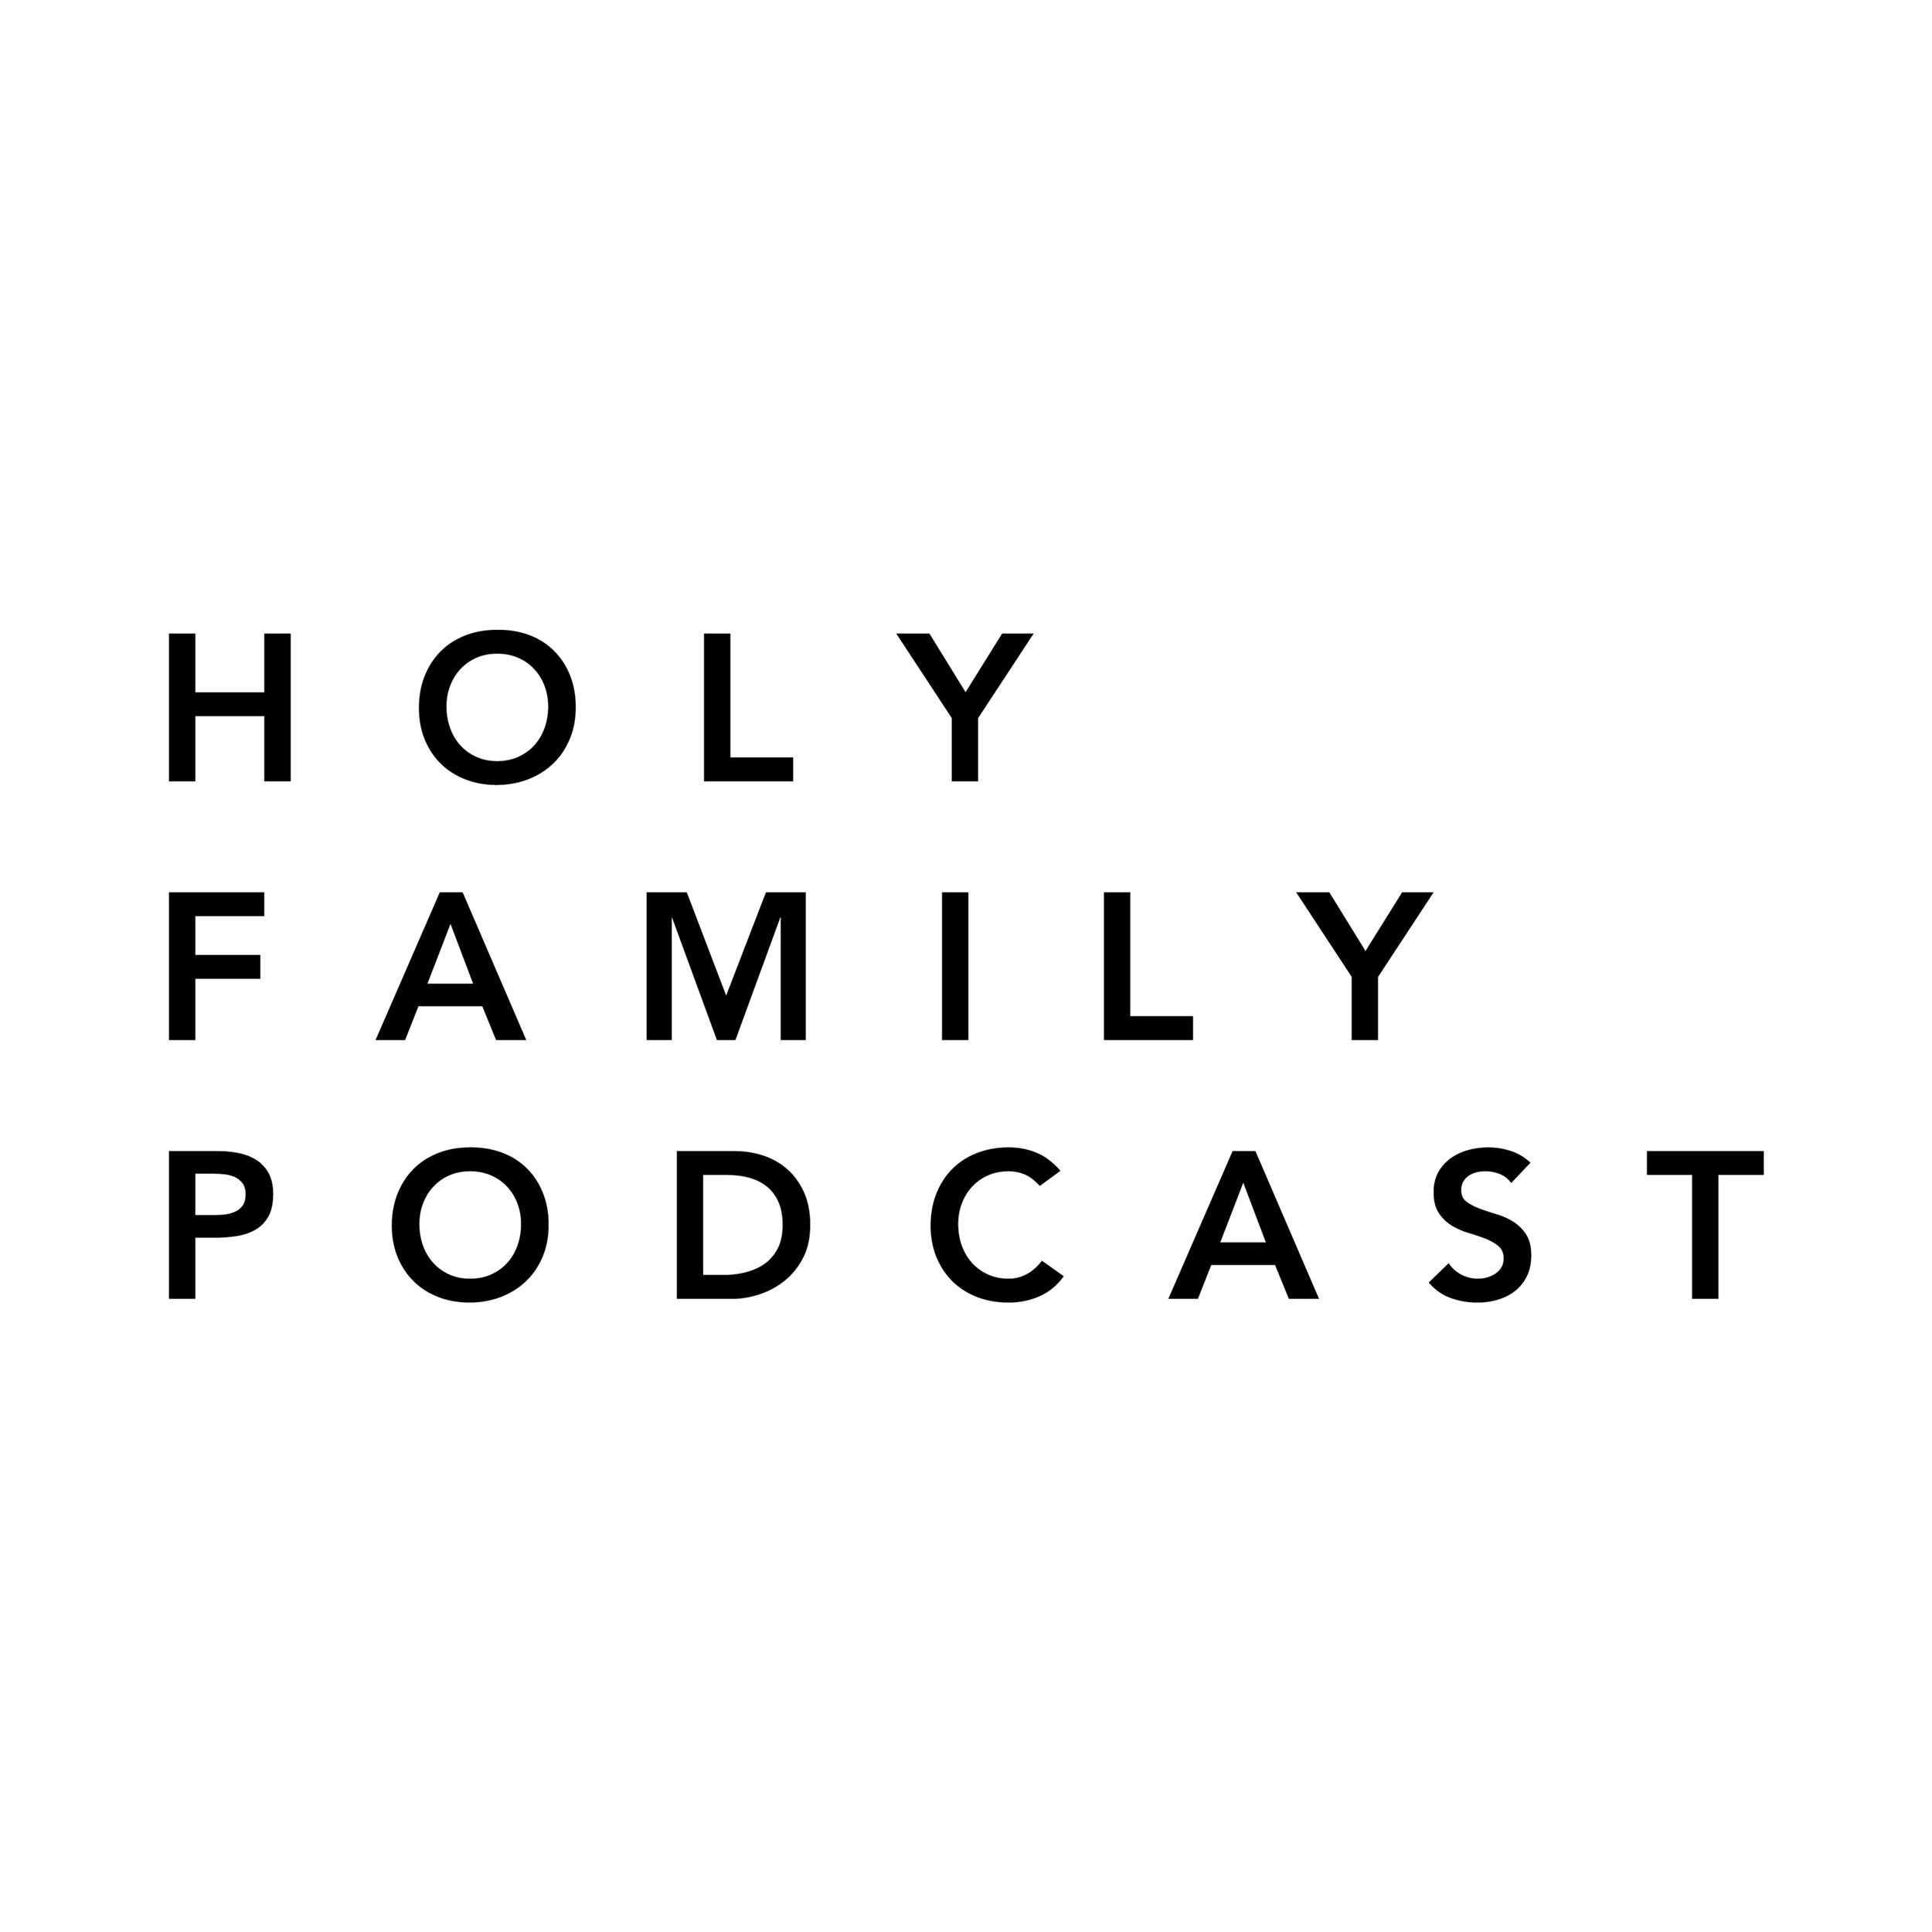 Holy Family Podcast - An exploration of all things liturgical and theological, hosted by Luke Brawner and Jacob Breeze.Hear the latest episode below!